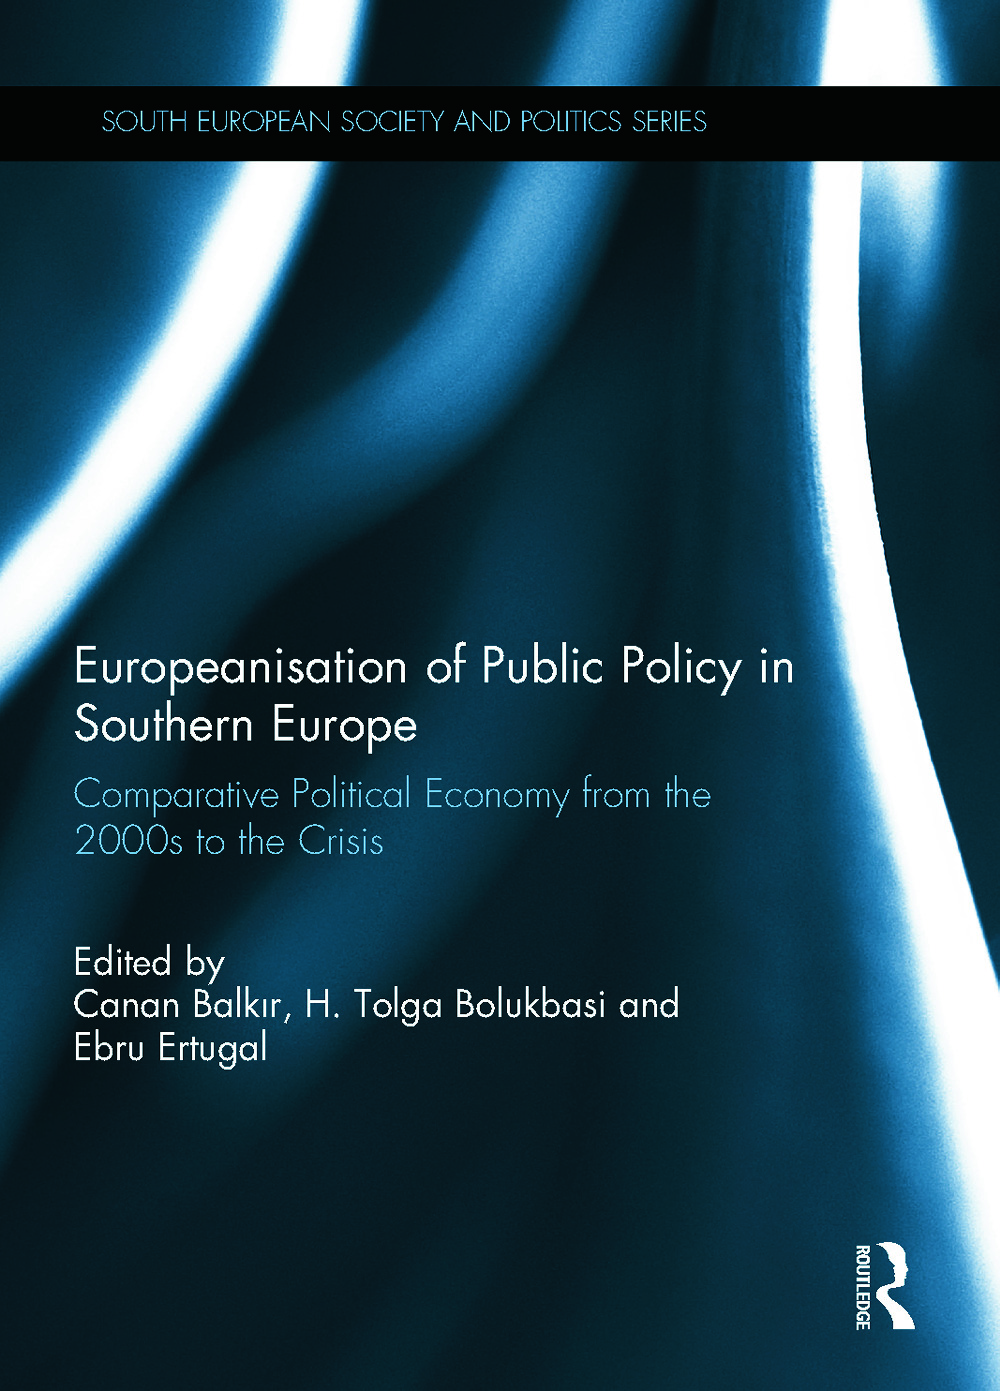 Europeanisation of Public Policy in Southern Europe: Comparative Political Economy from the 2000s to the Crisis book cover